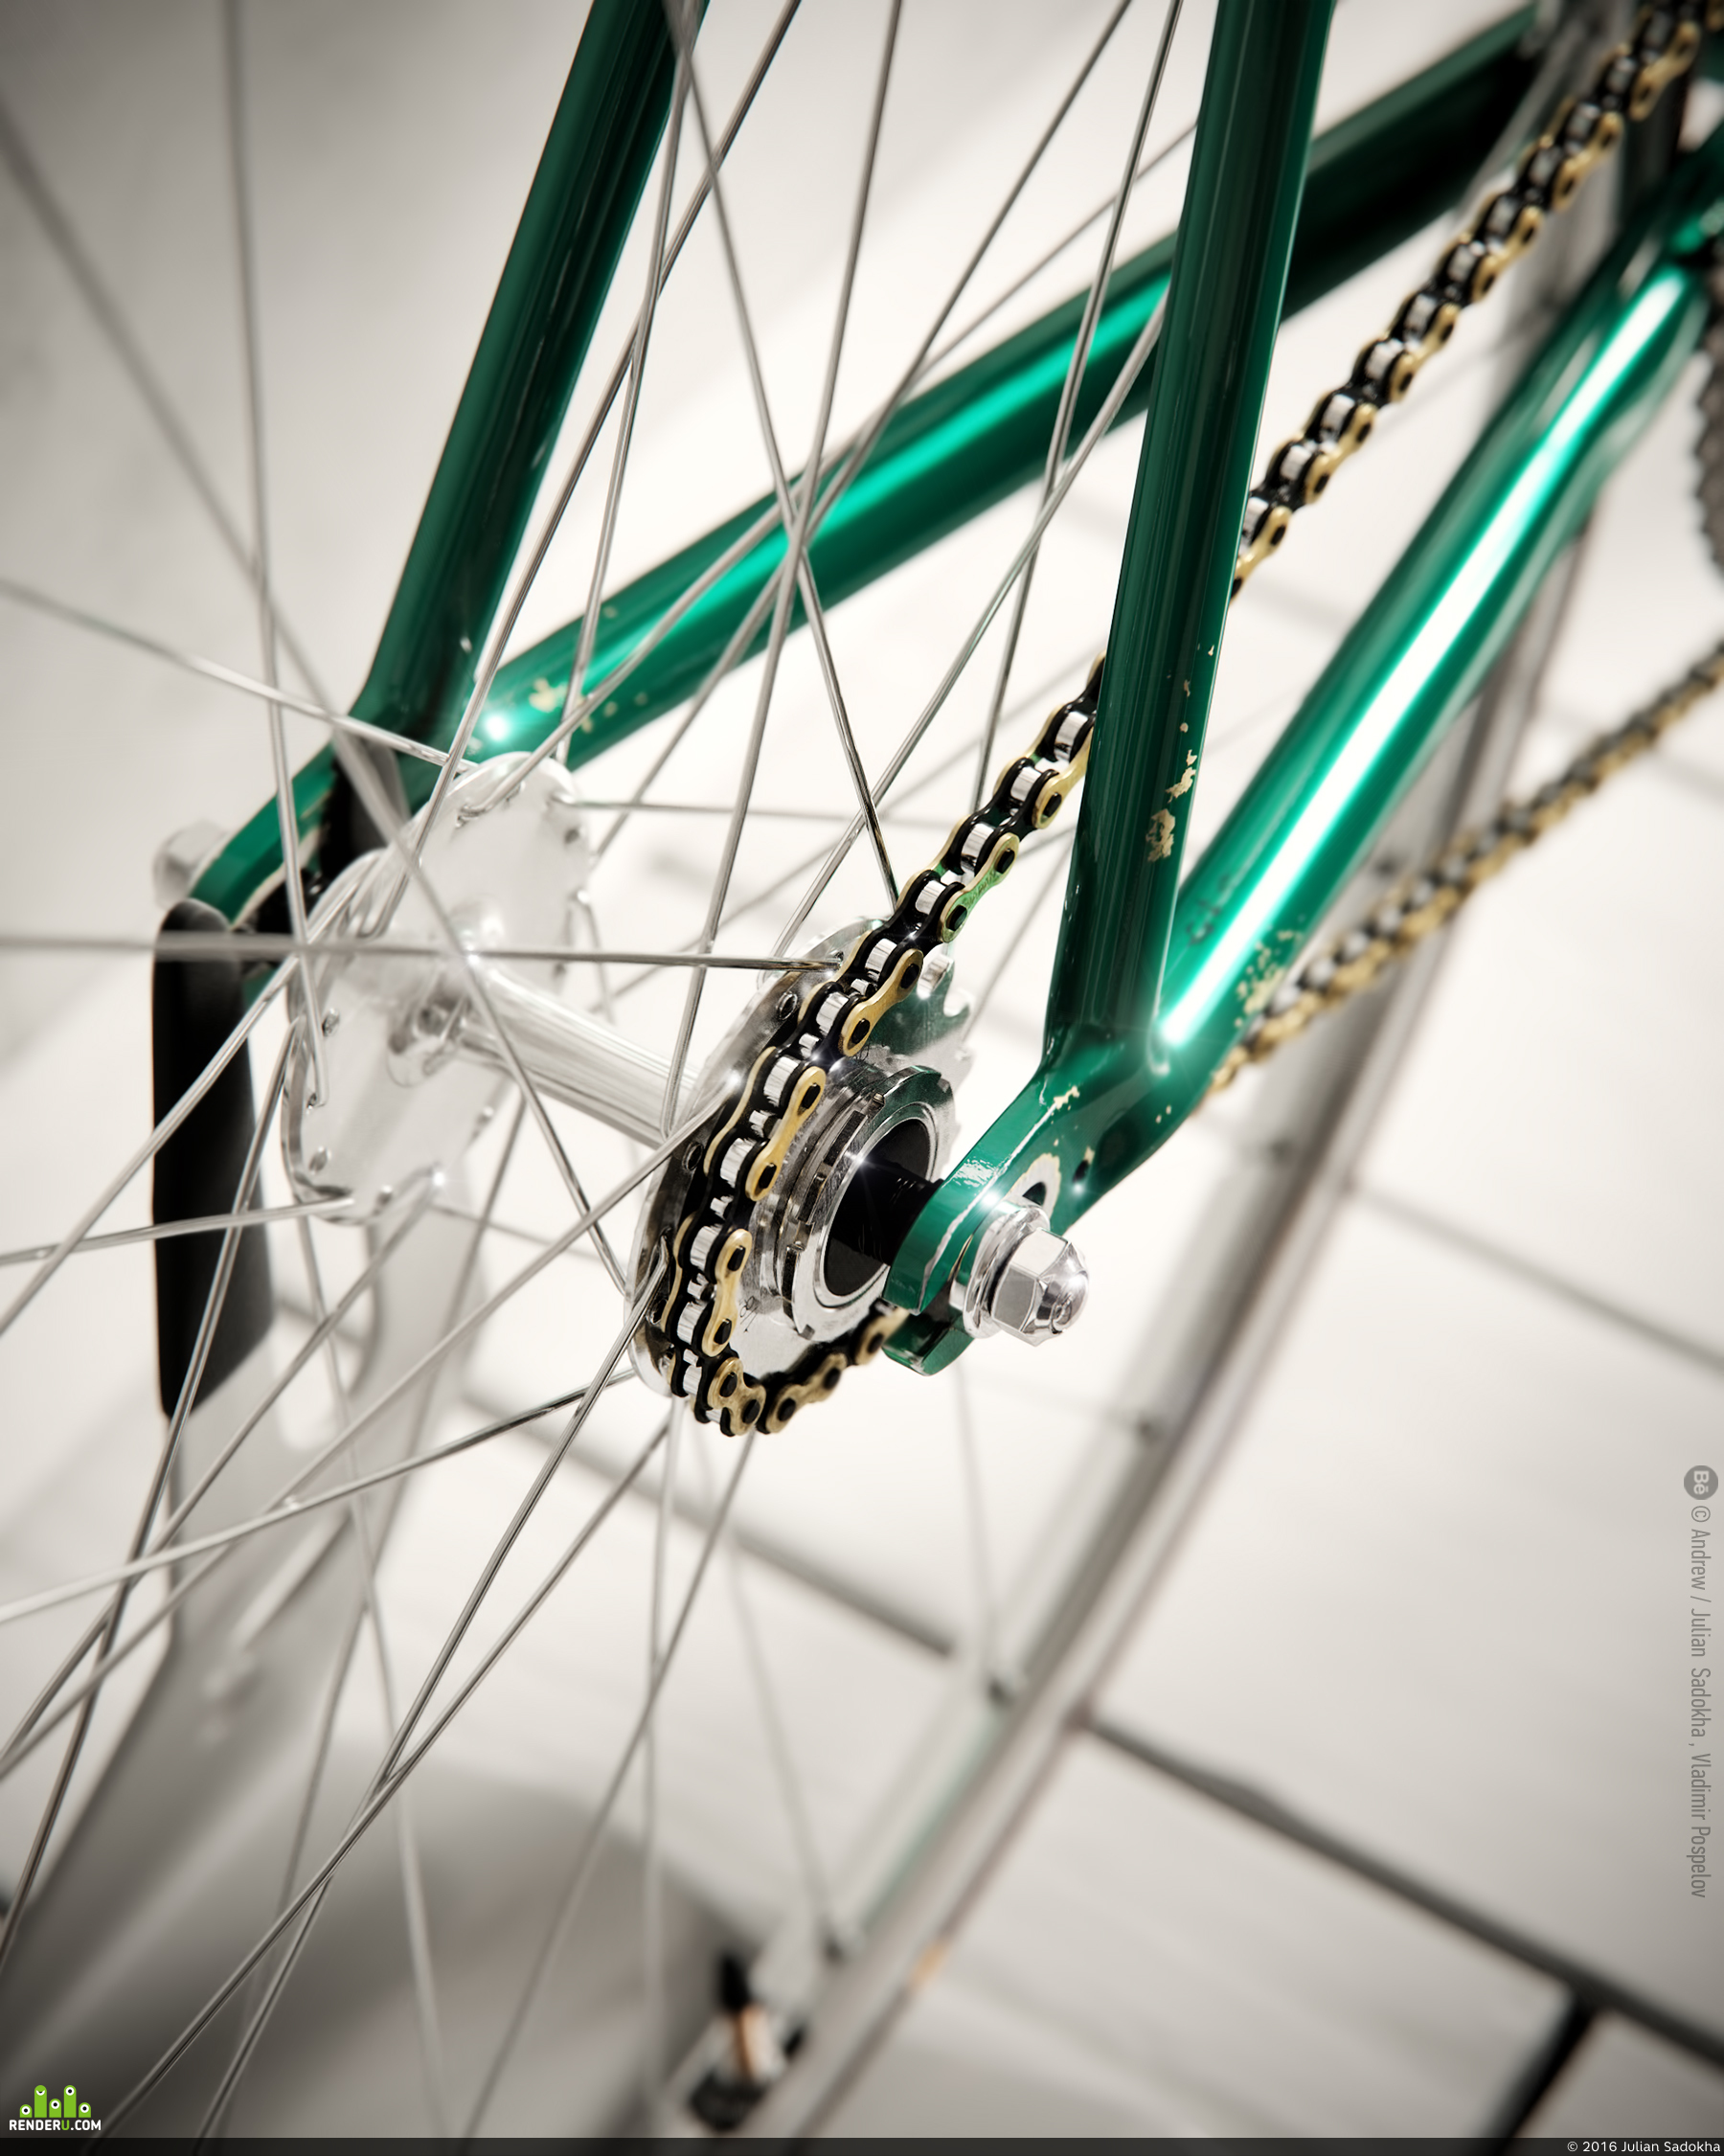 preview Cannondale Track 1992 3.0 Series